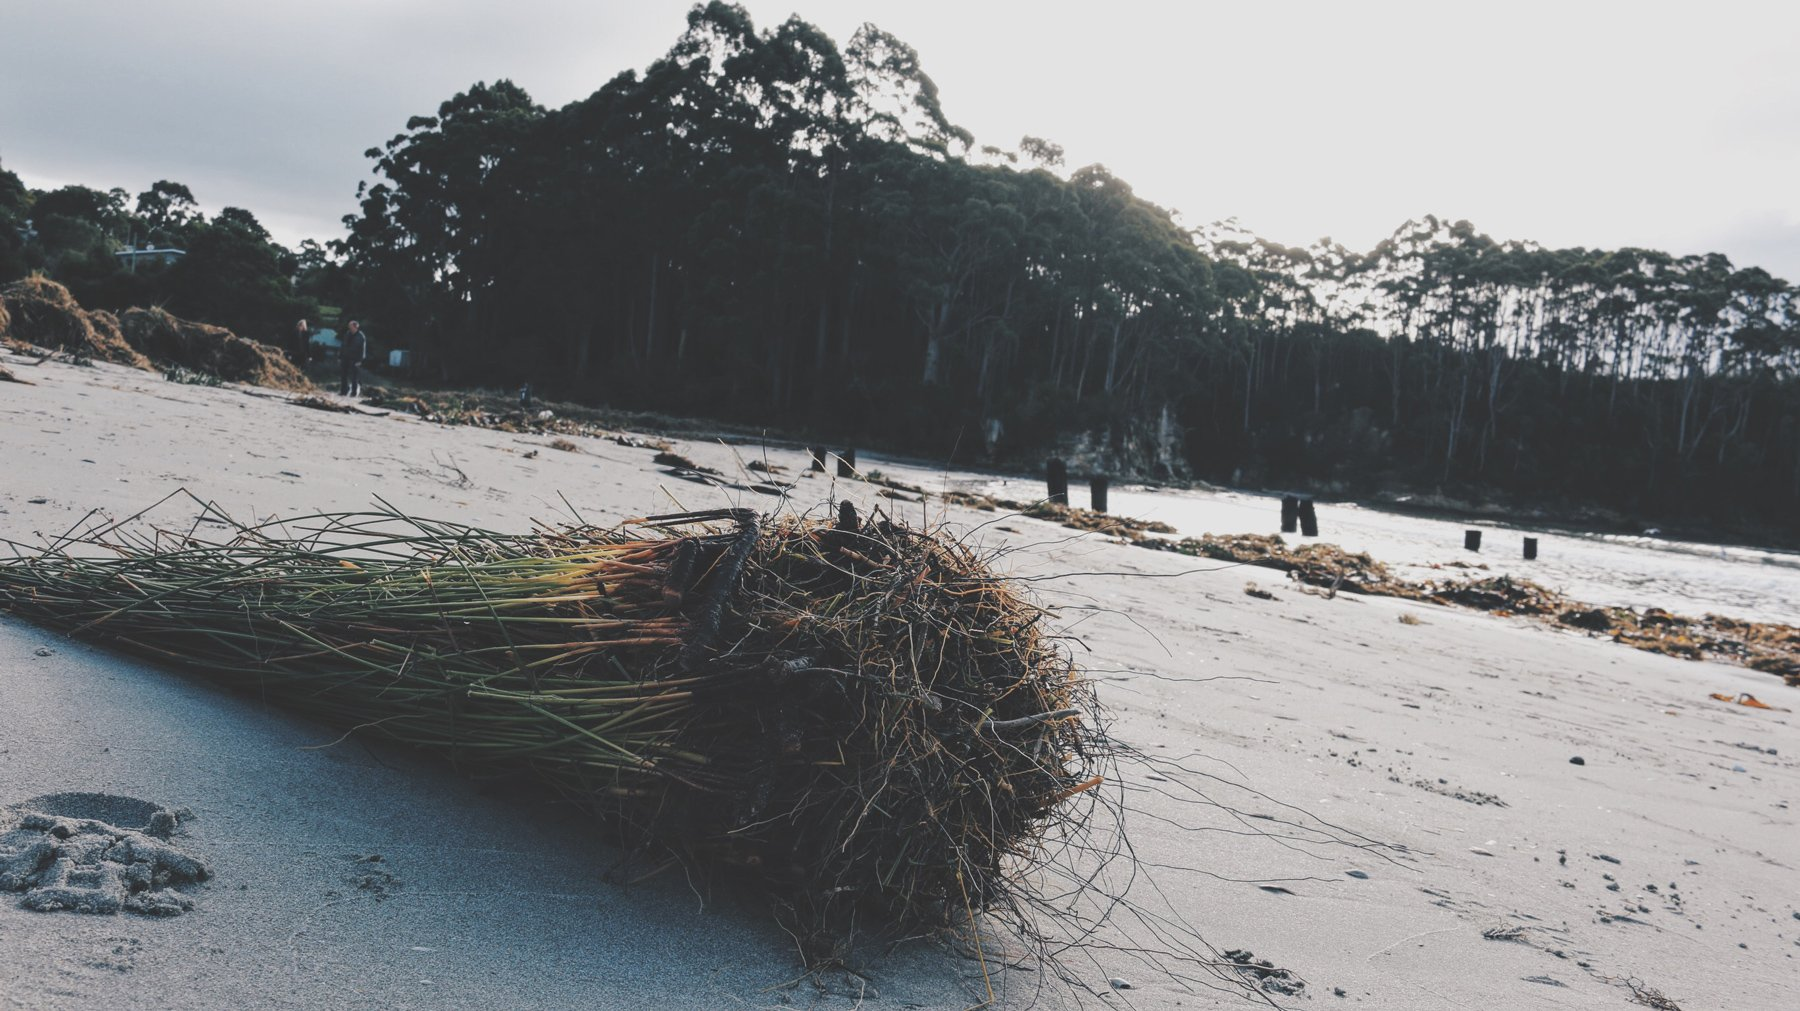 tumble weed washes up on beach